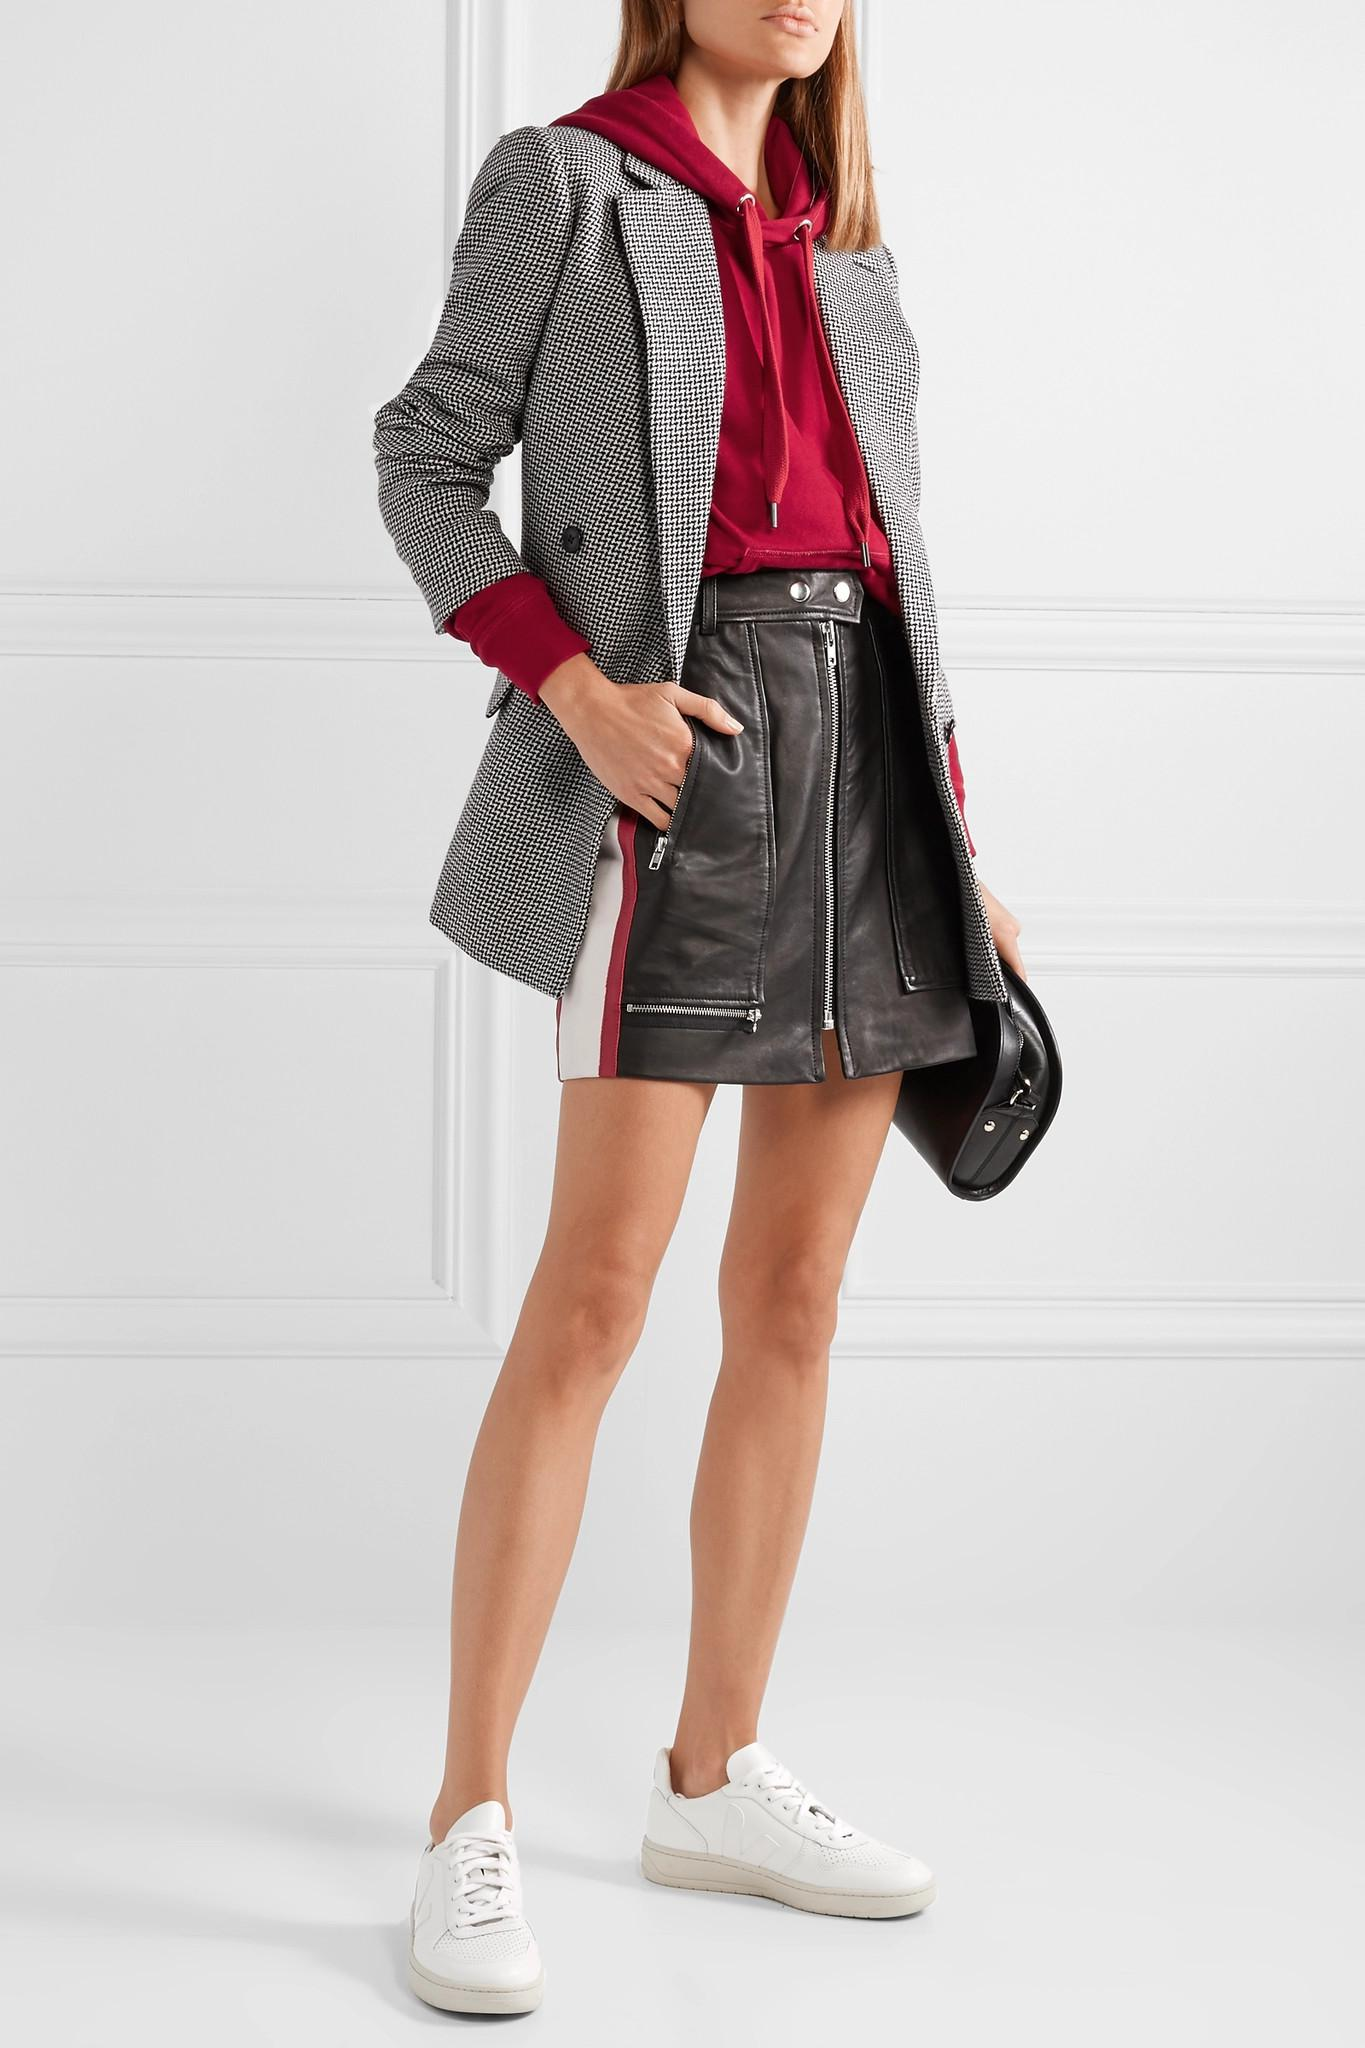 e6ce51d07bba3e etoile-isabel-marant-black-Alynne-Striped-Leather-Mini-Skirt.jpeg